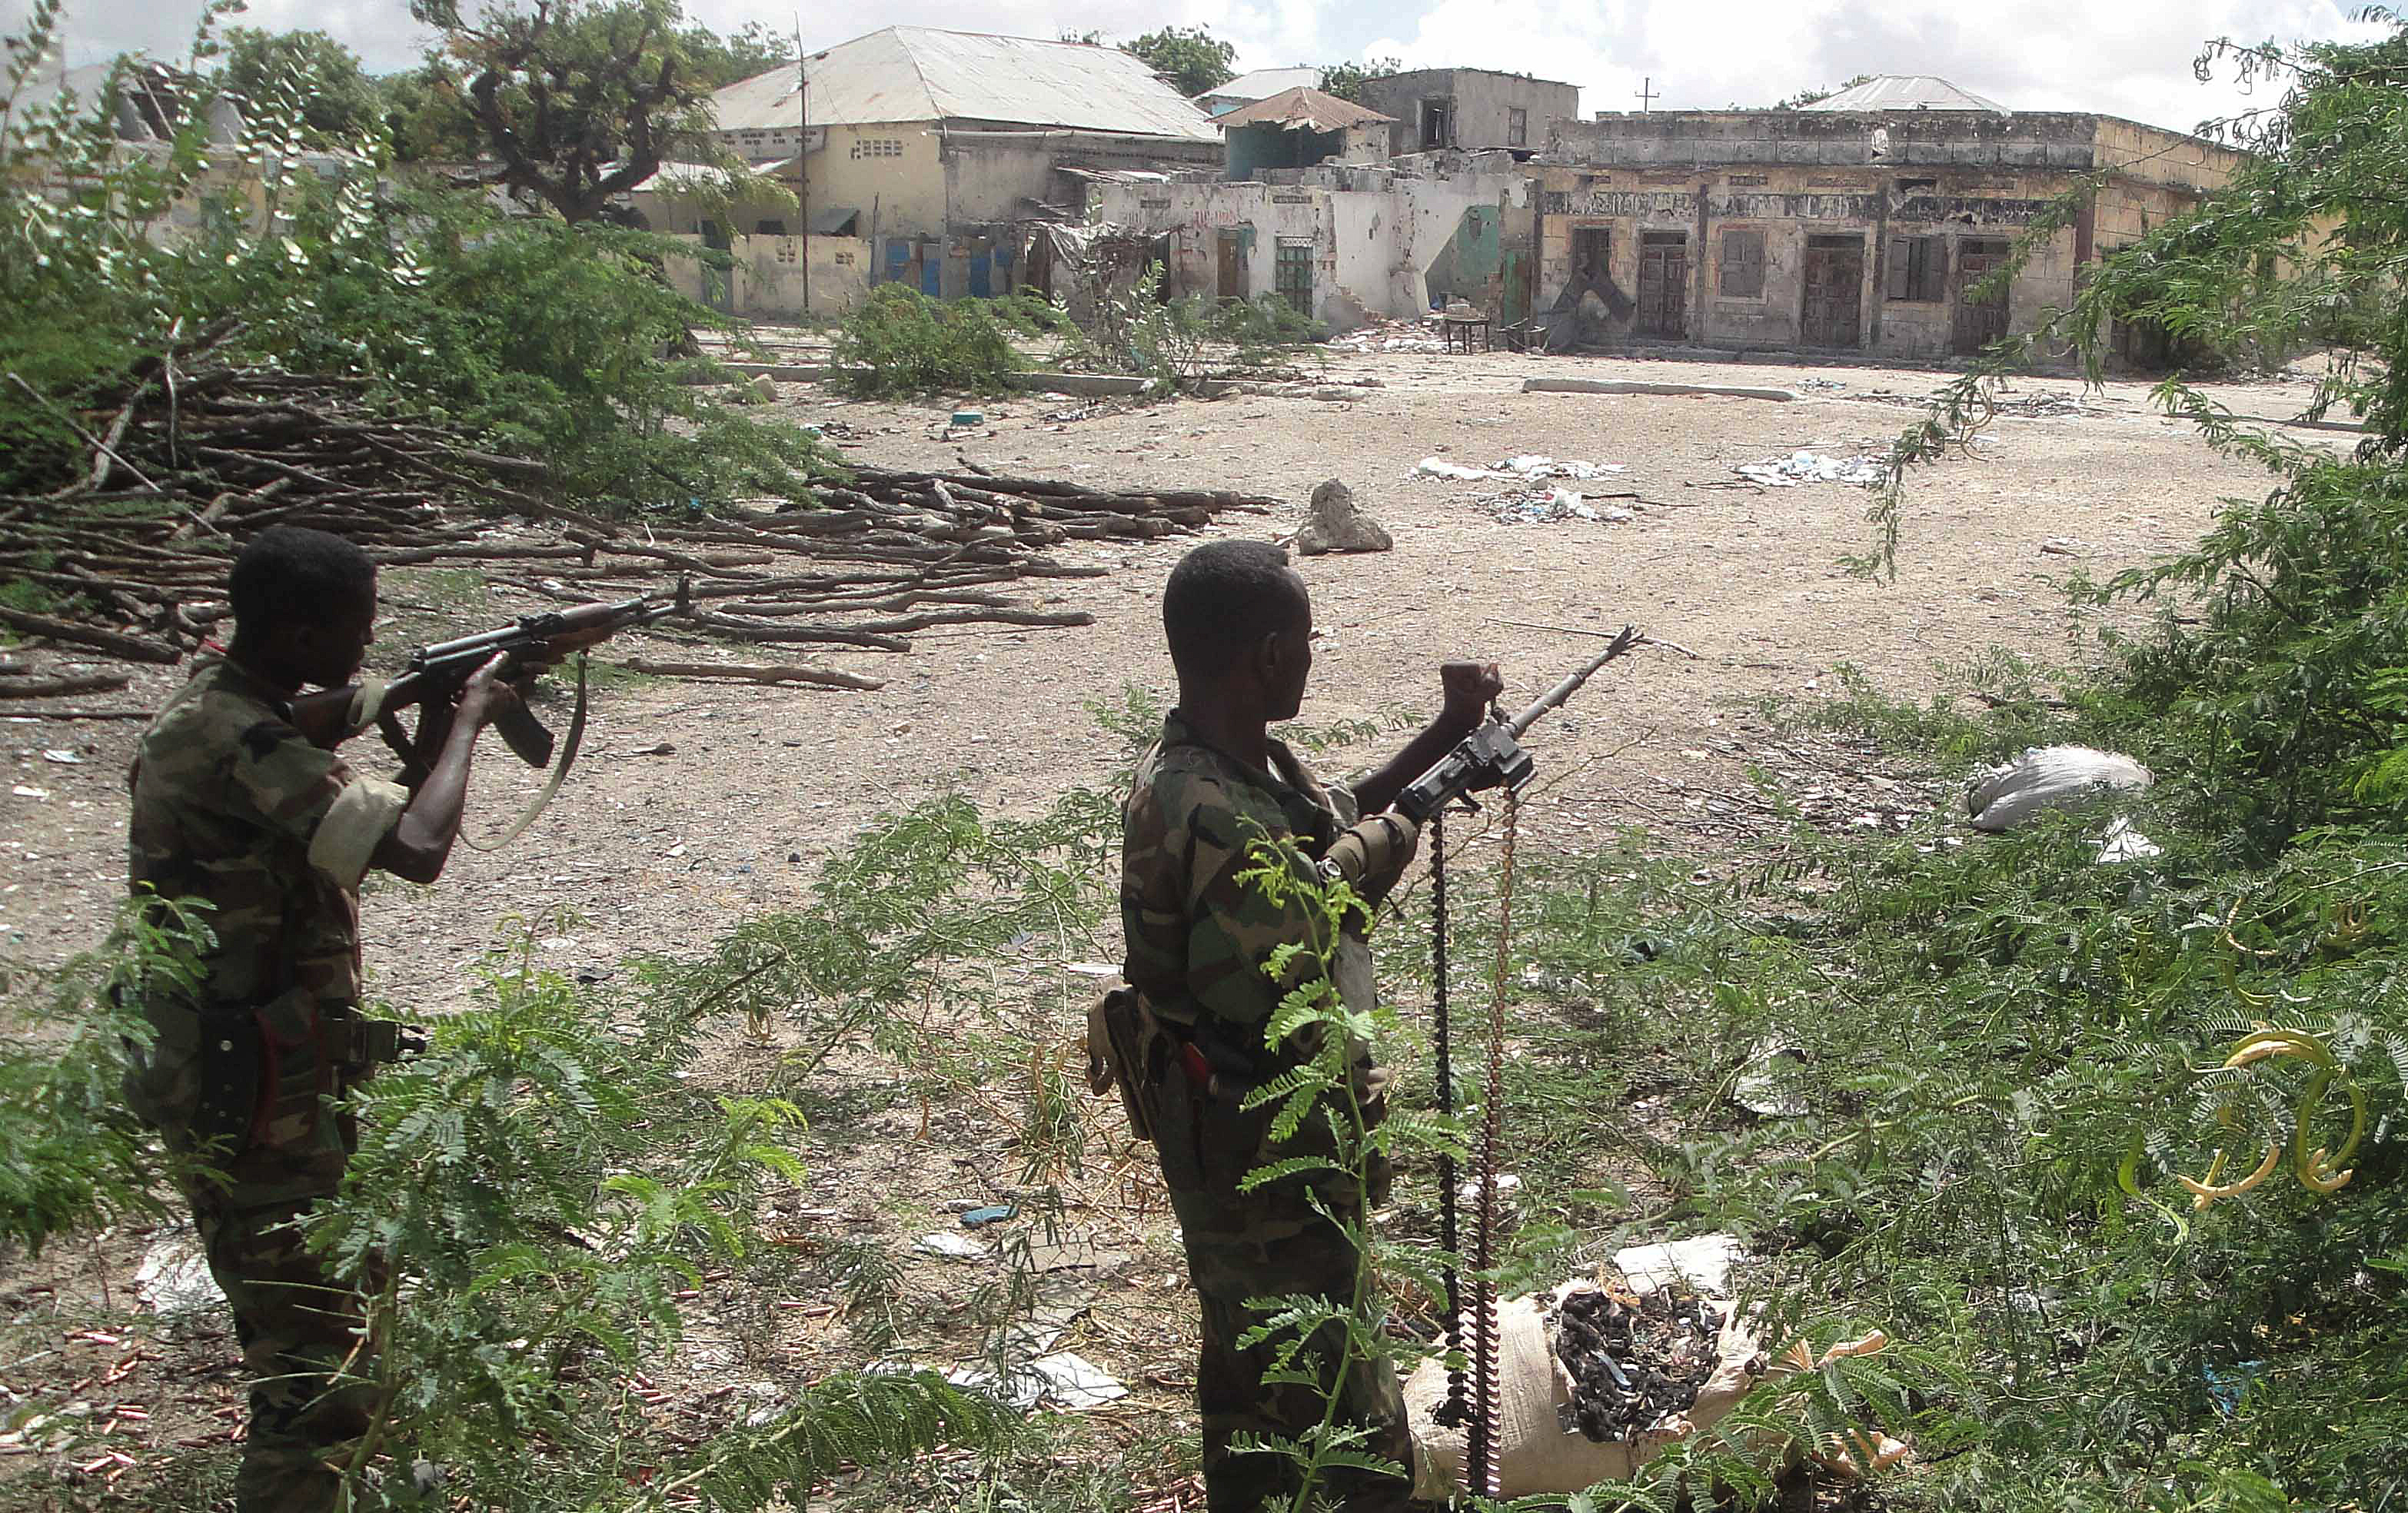 Al-Shabaab – A Looming Threat